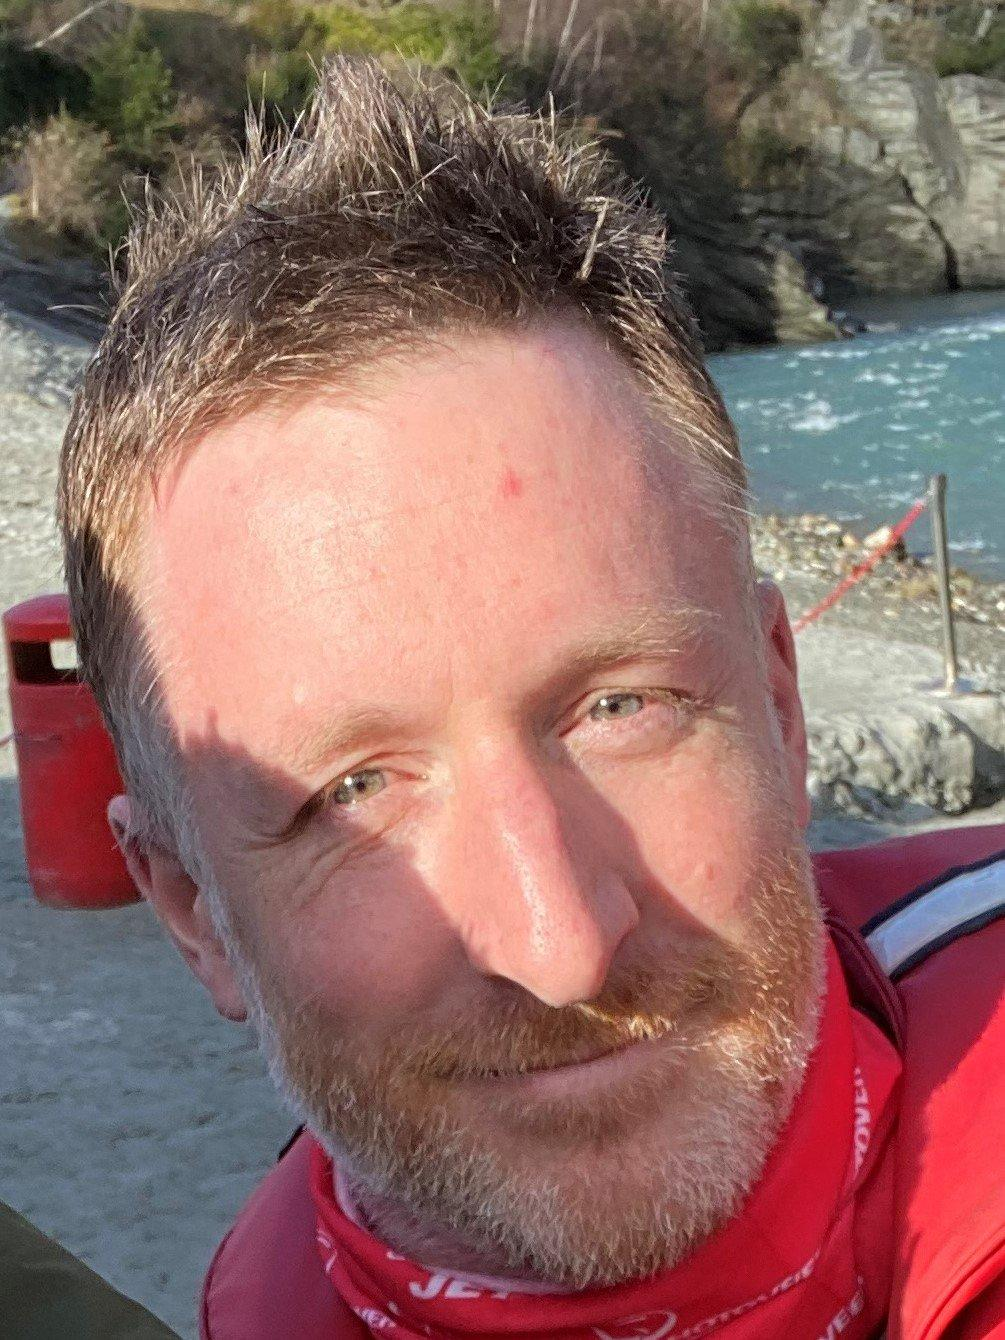 Photo of Searchers fail to find, name missing man | Otago Daily Times